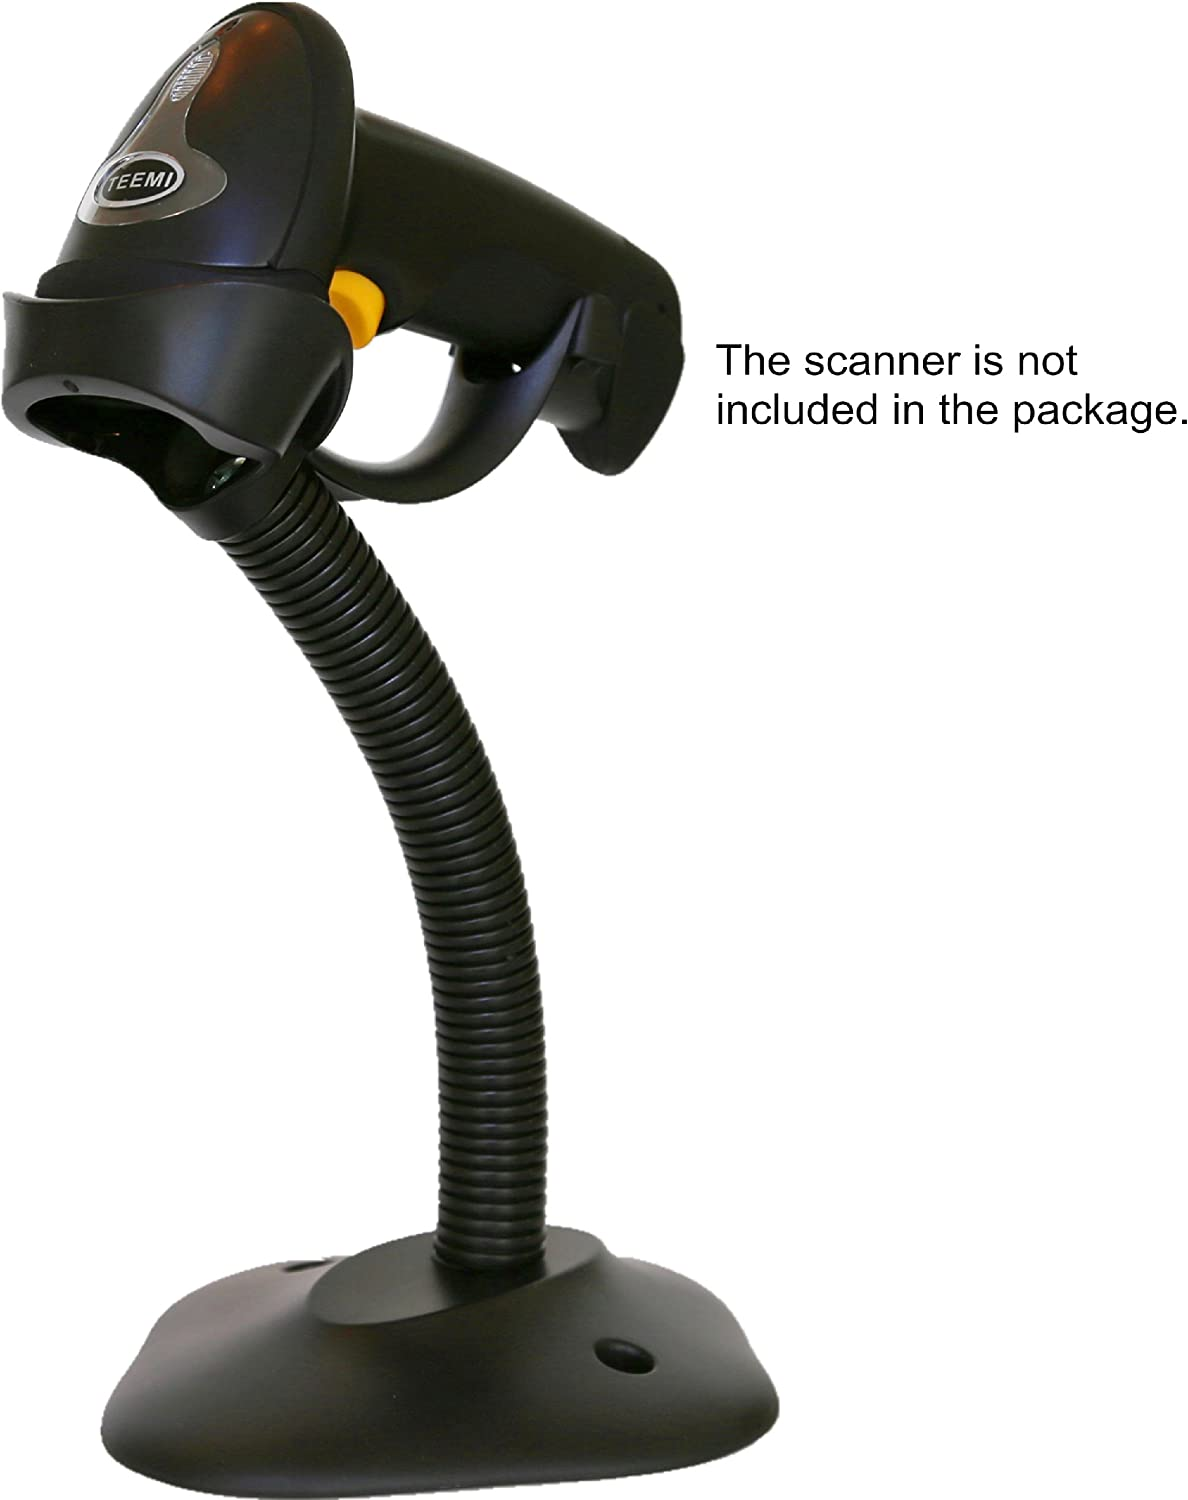 Barcode Scanning Bar-code Reader Cradle Holder for Symbol Scanner LS2208 and TEEMI TMCT-07 and TMCT-10 barcode scanner TEEMI Barcode Scanner Hands Free Adjustable Stand